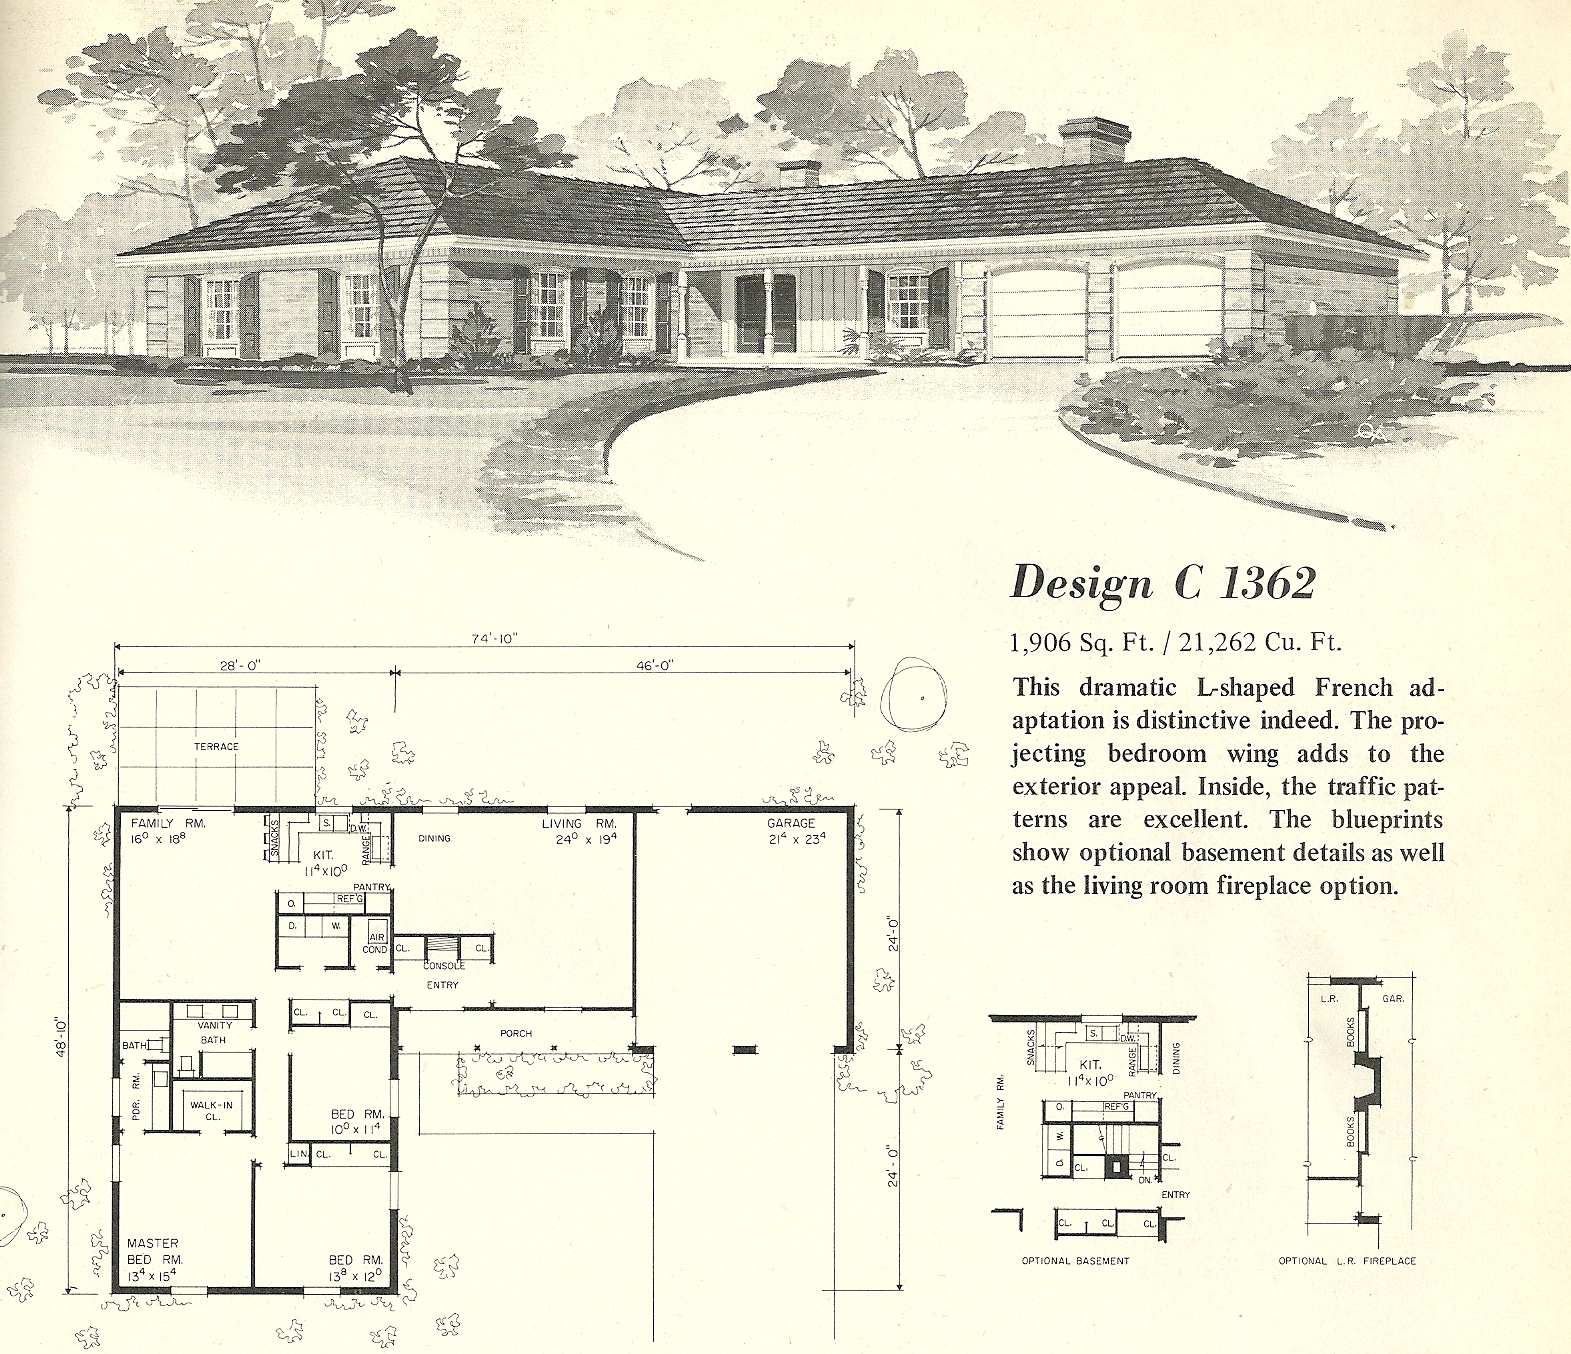 vintage house plans 1362 antique alter ego